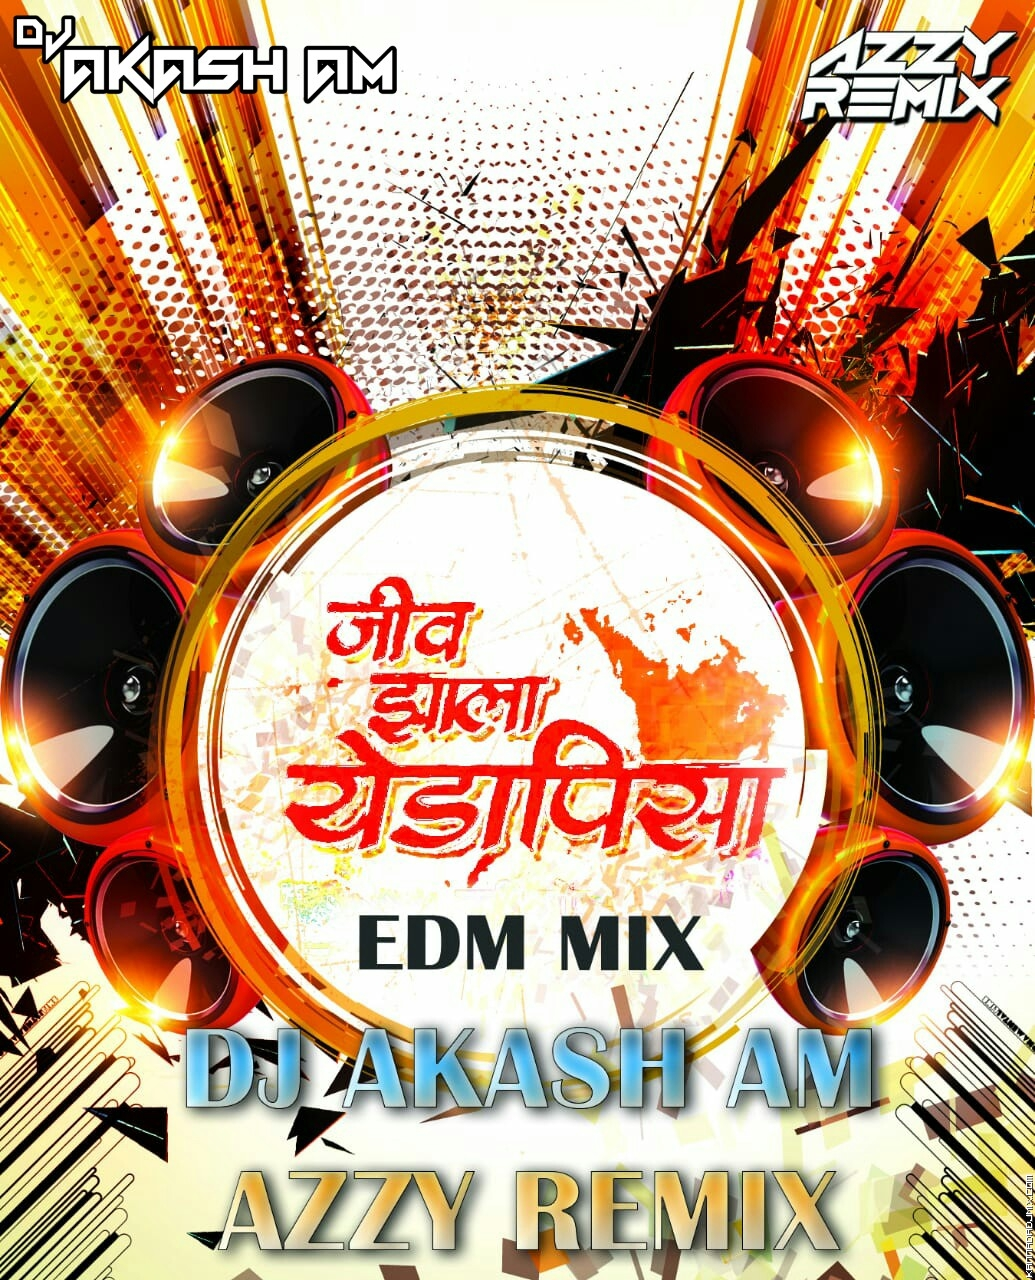 JEEV JHALA YEDA PISA(EDM TOUCH)-DJ AKASH AM & AZZY REMIX.mp3